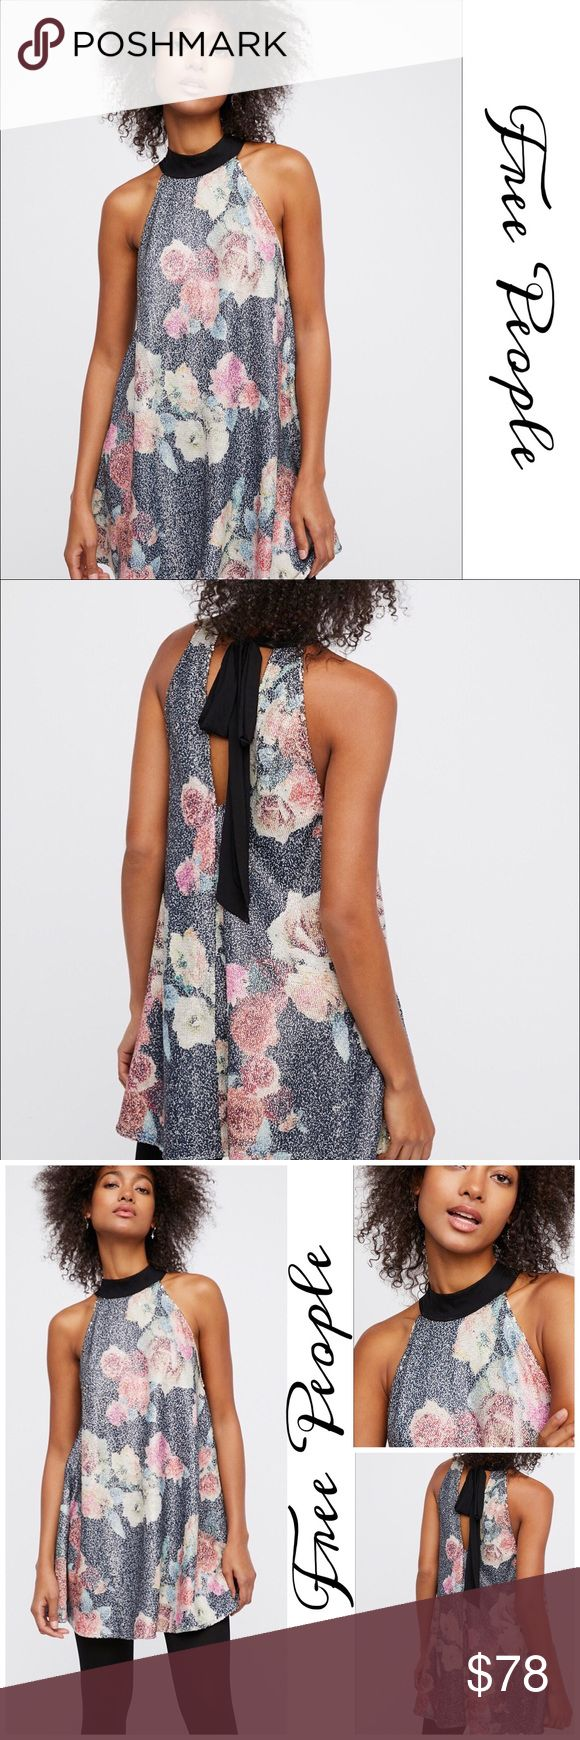 """Pow Wow Sequin Tunic/ Dress Gorgeous floral printed slip dress by Free People featuring a swingy shape, a shimmering sequin design and a sophisticated neckline finished with a back tie detail Back cutout with Chiffon self ties  Intimately Free Nylon- mesh- sequin Perfect dress for date night or girls night out! Approx measurements  Length: 30"""" Bust: 39"""" Free People Dresses Mini"""